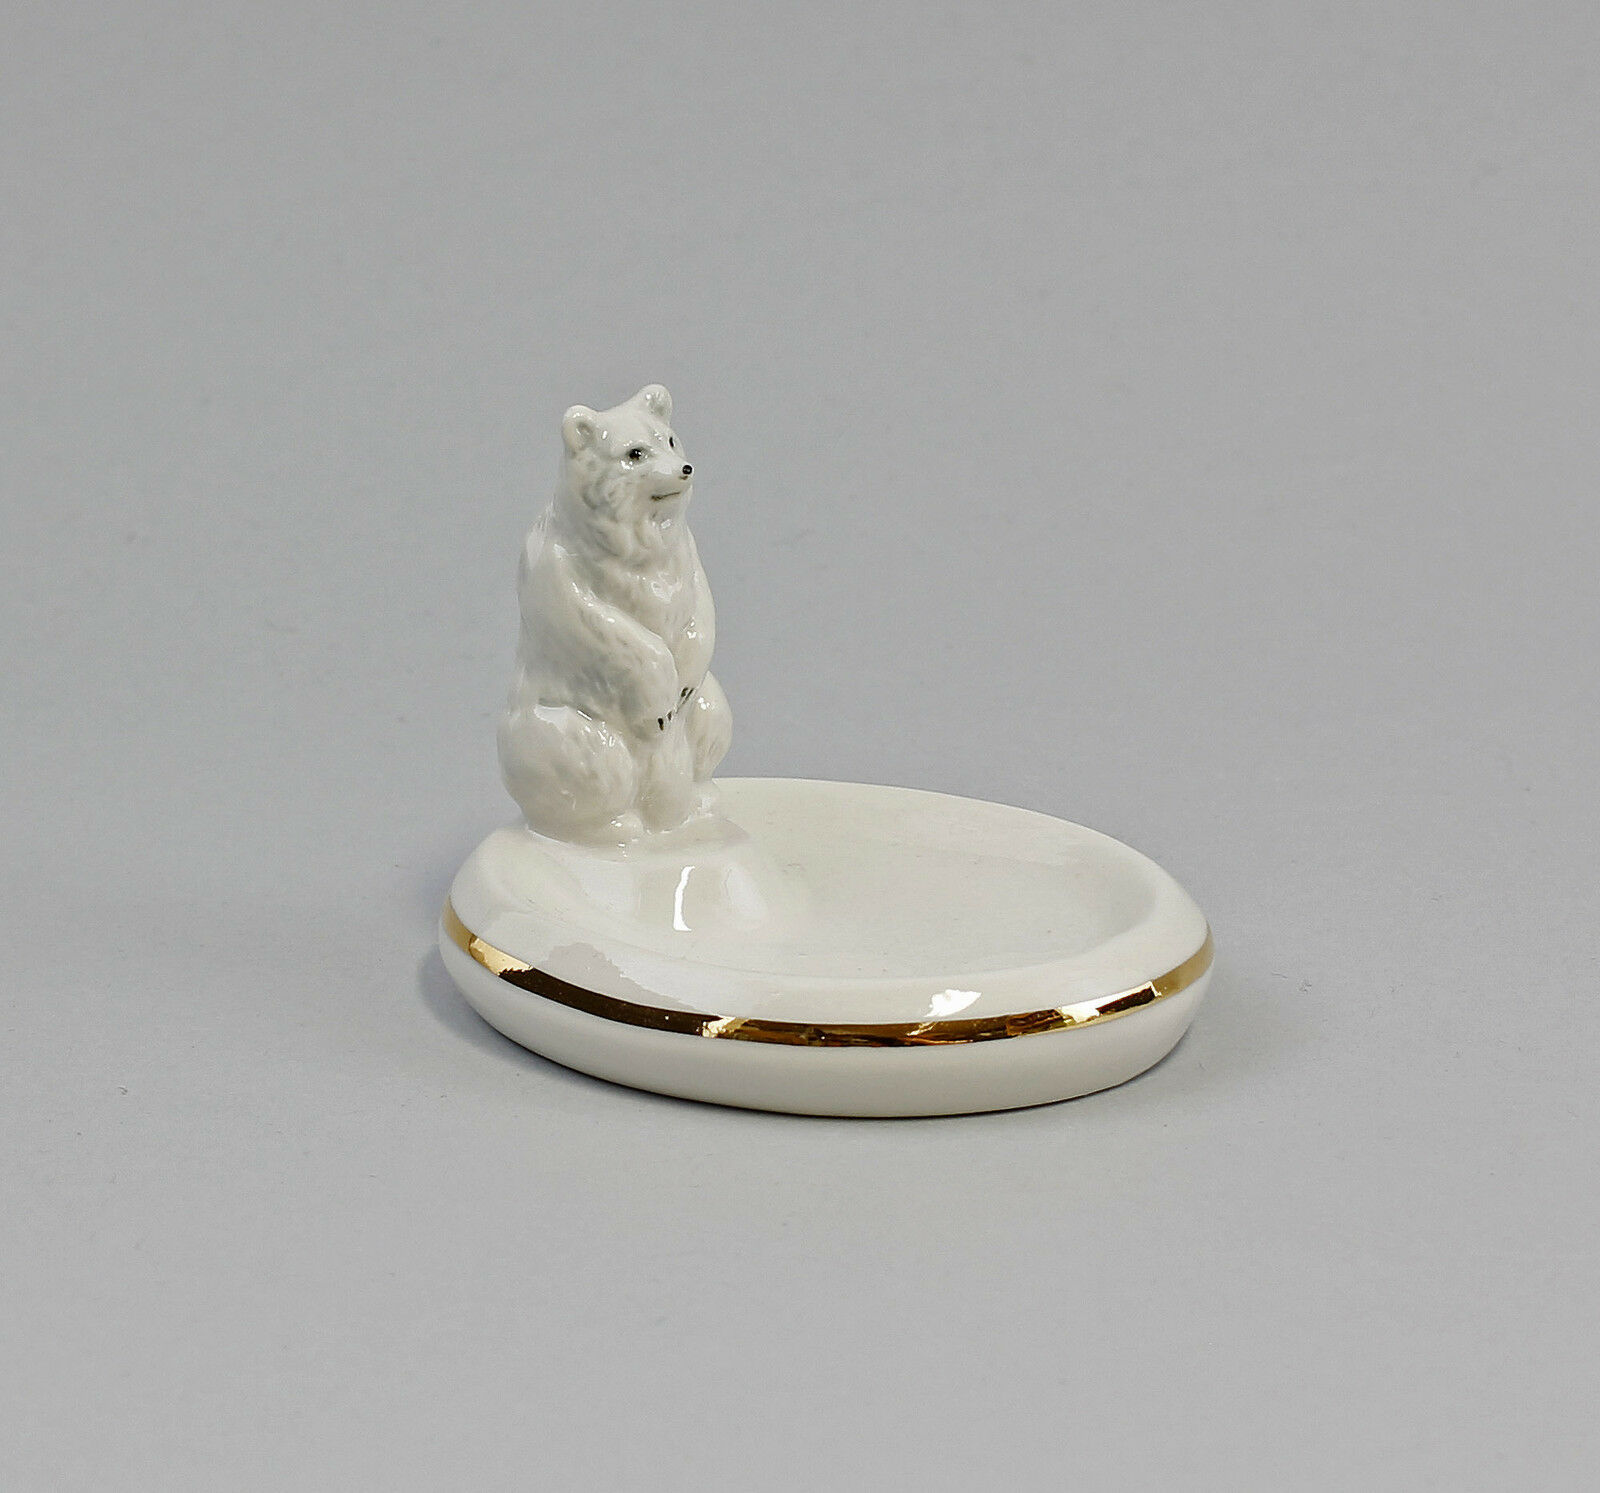 porcelain figurine Ens Thuringia Bowl Polar bear 9941811